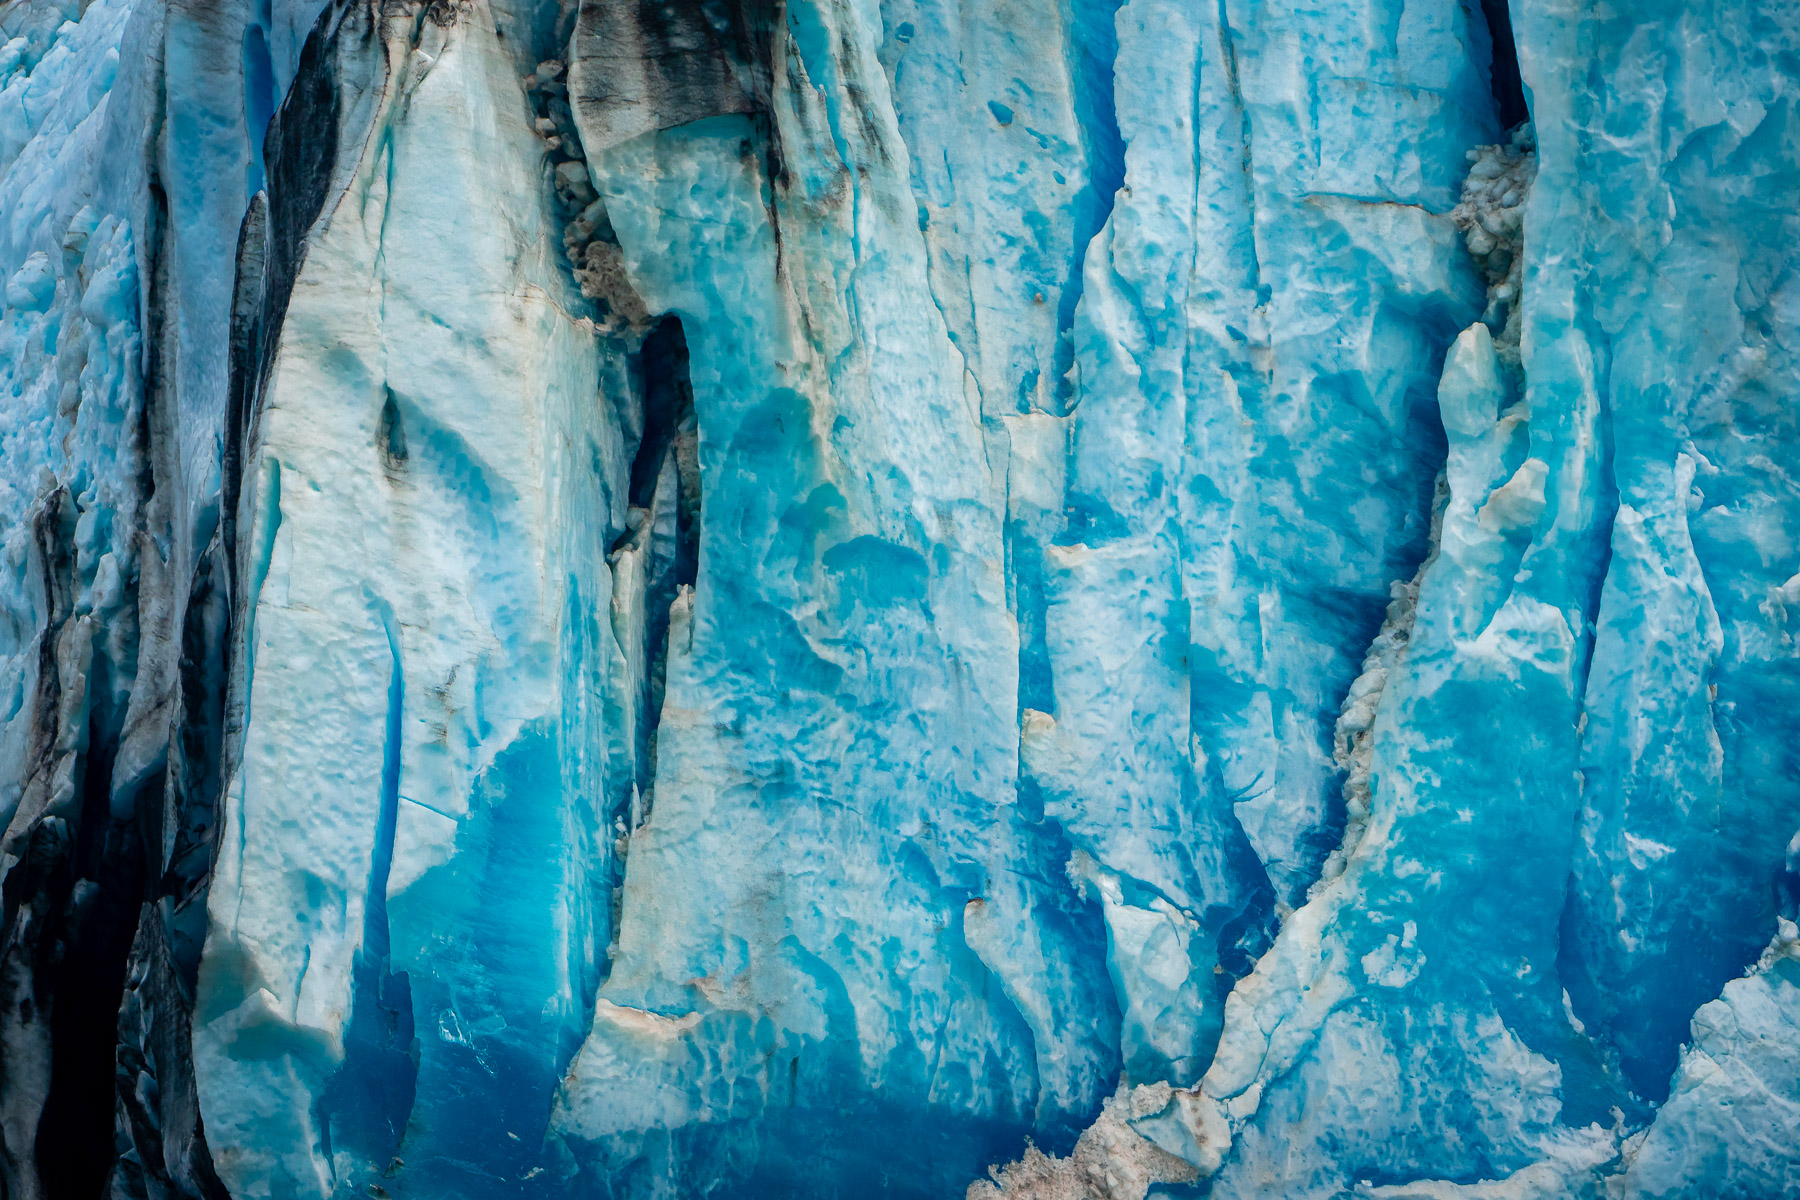 Detail of an iceberg spotted in Alaska's Tracy Arm Fjord.